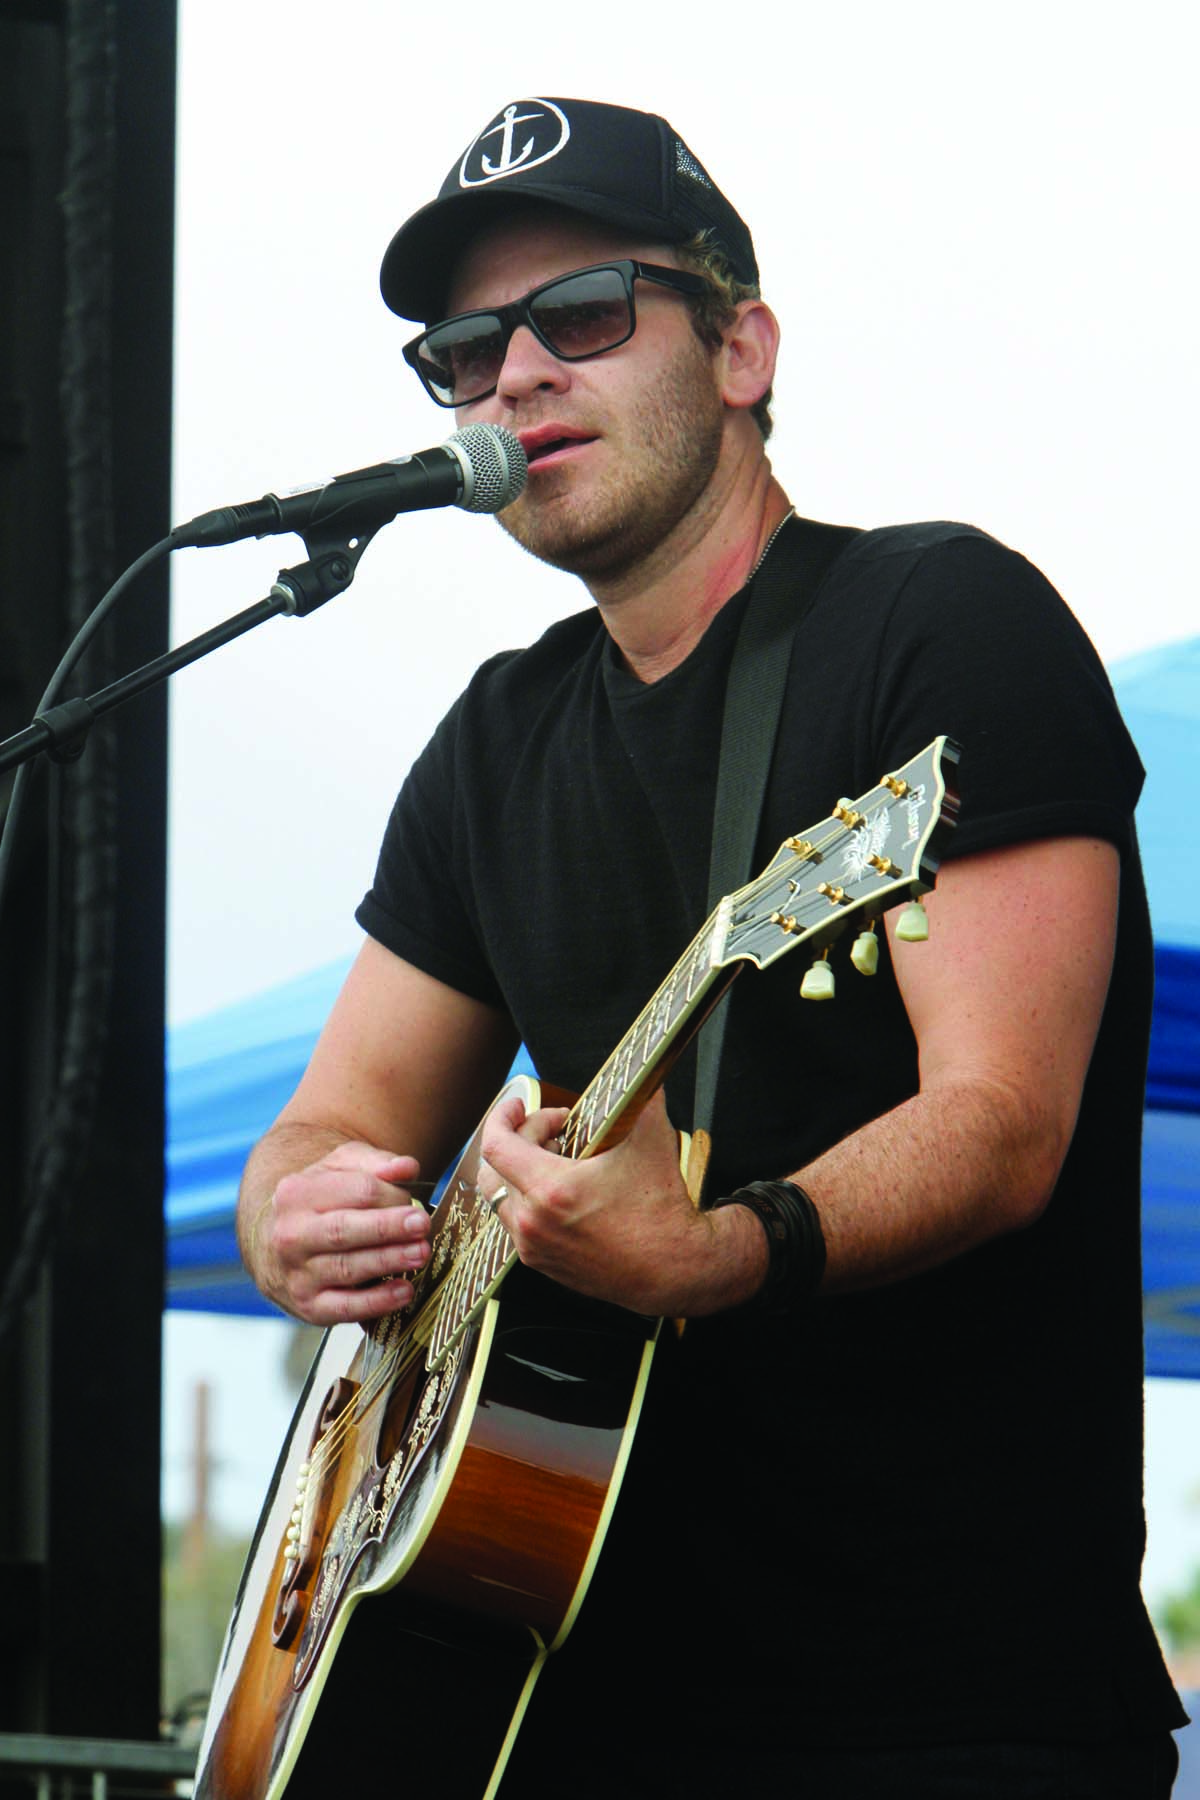 Lead vocalist Jason Wade of Lifehouse, which opened for Switchfoot. Photo by Pat Cubel